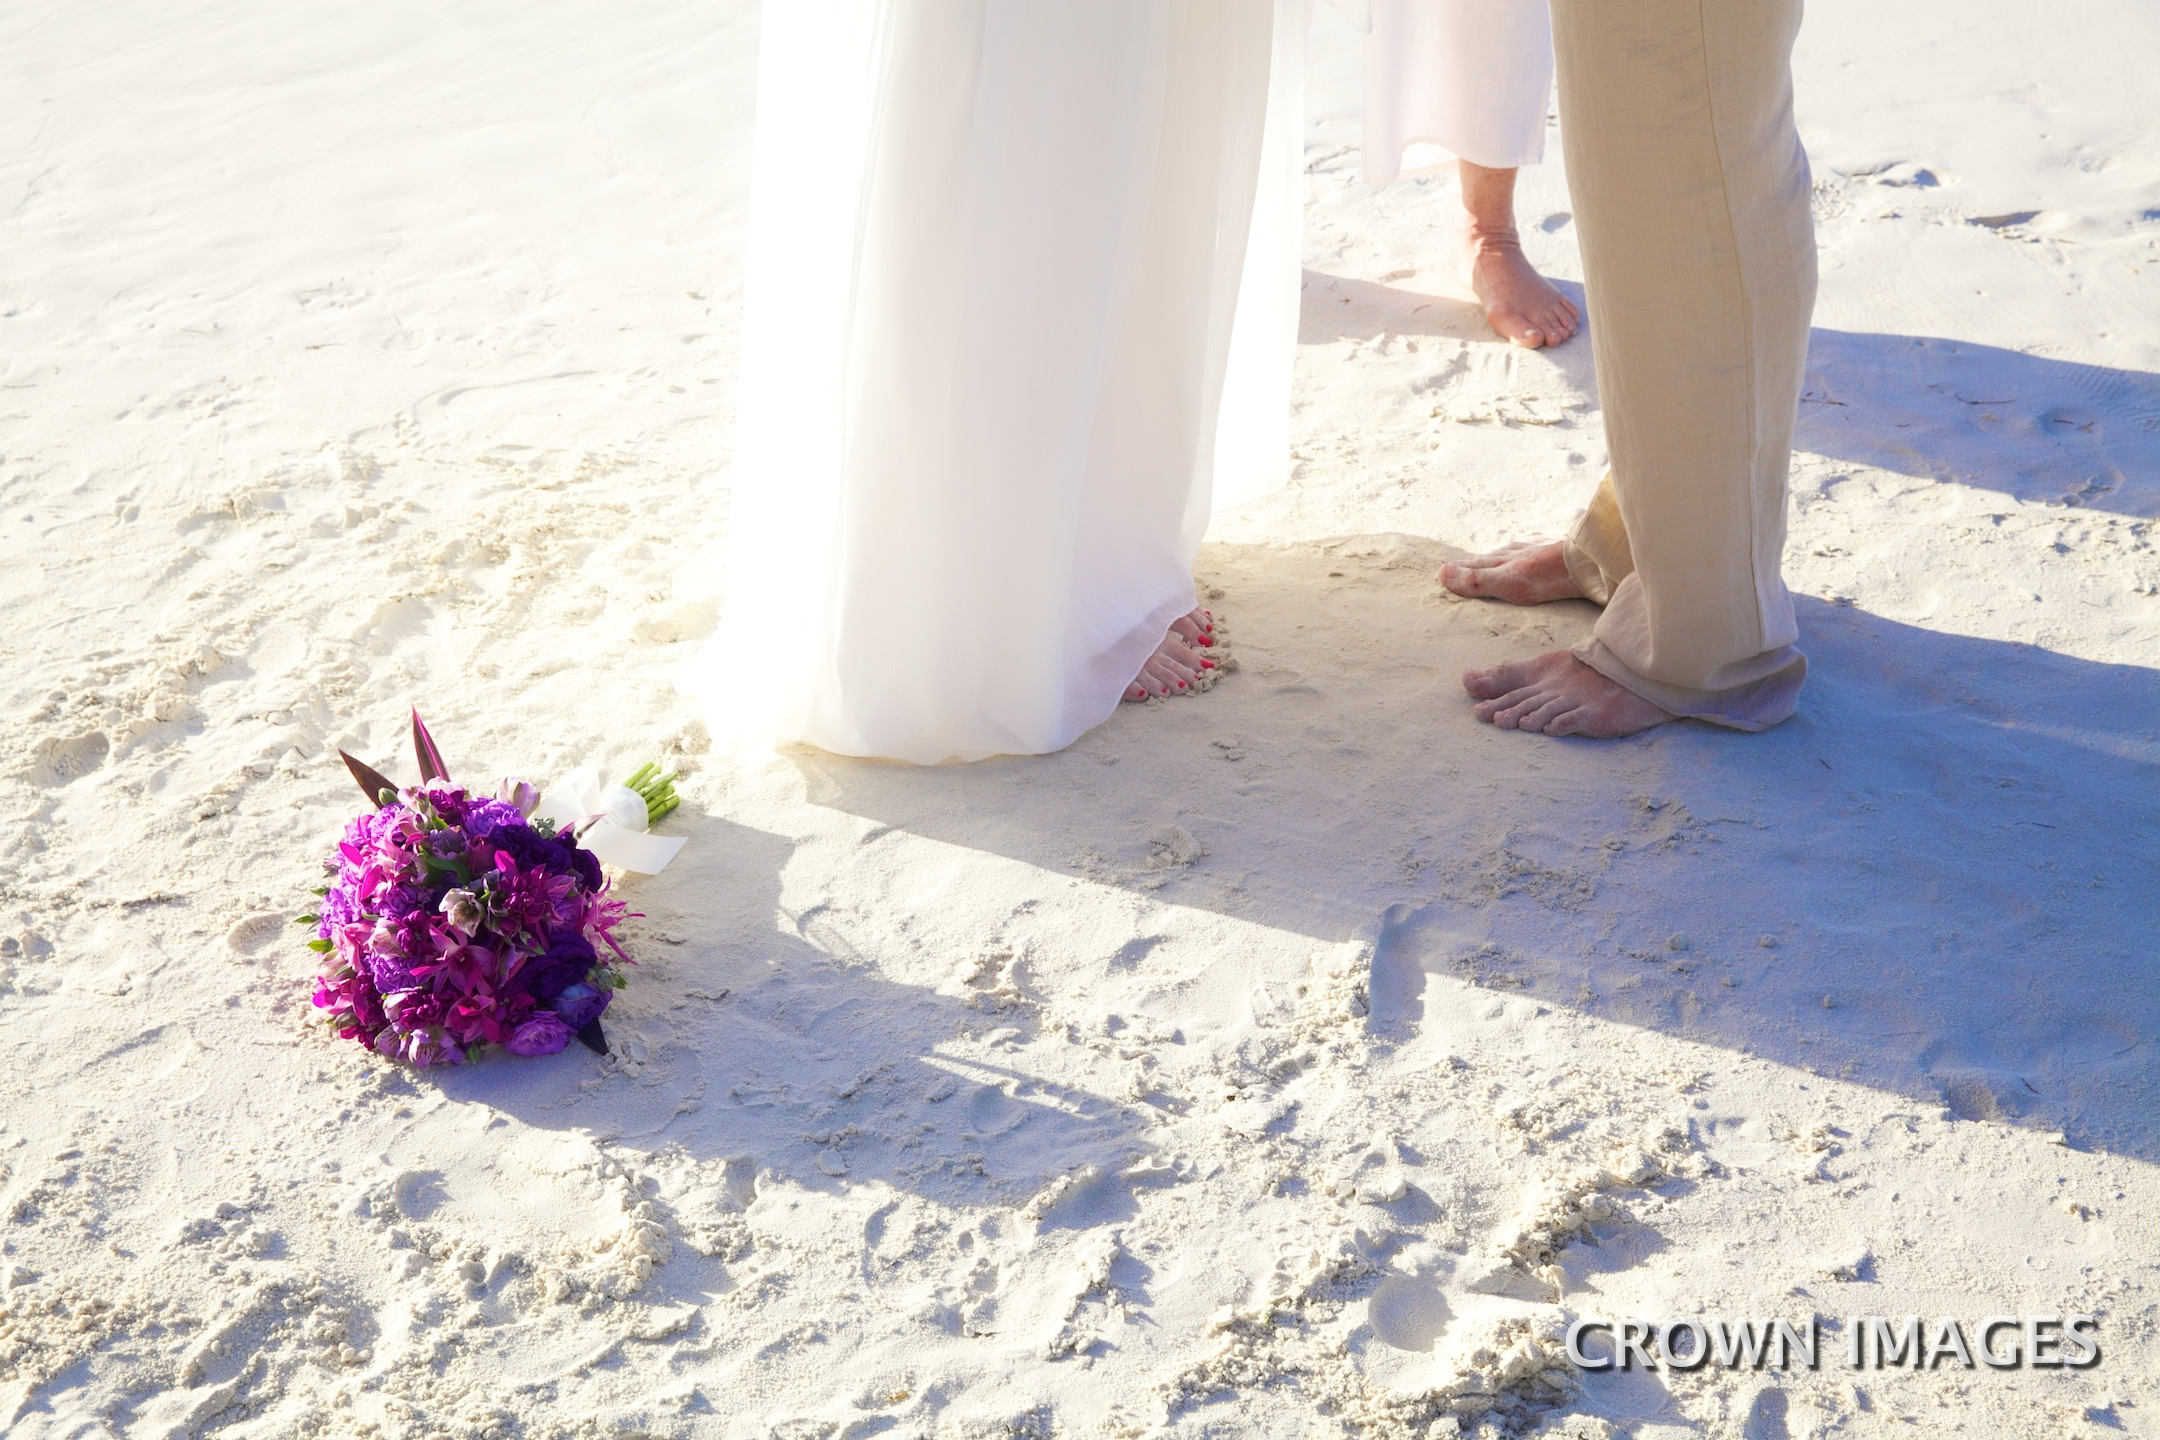 st_john_wedding_IMG_7006.jpg